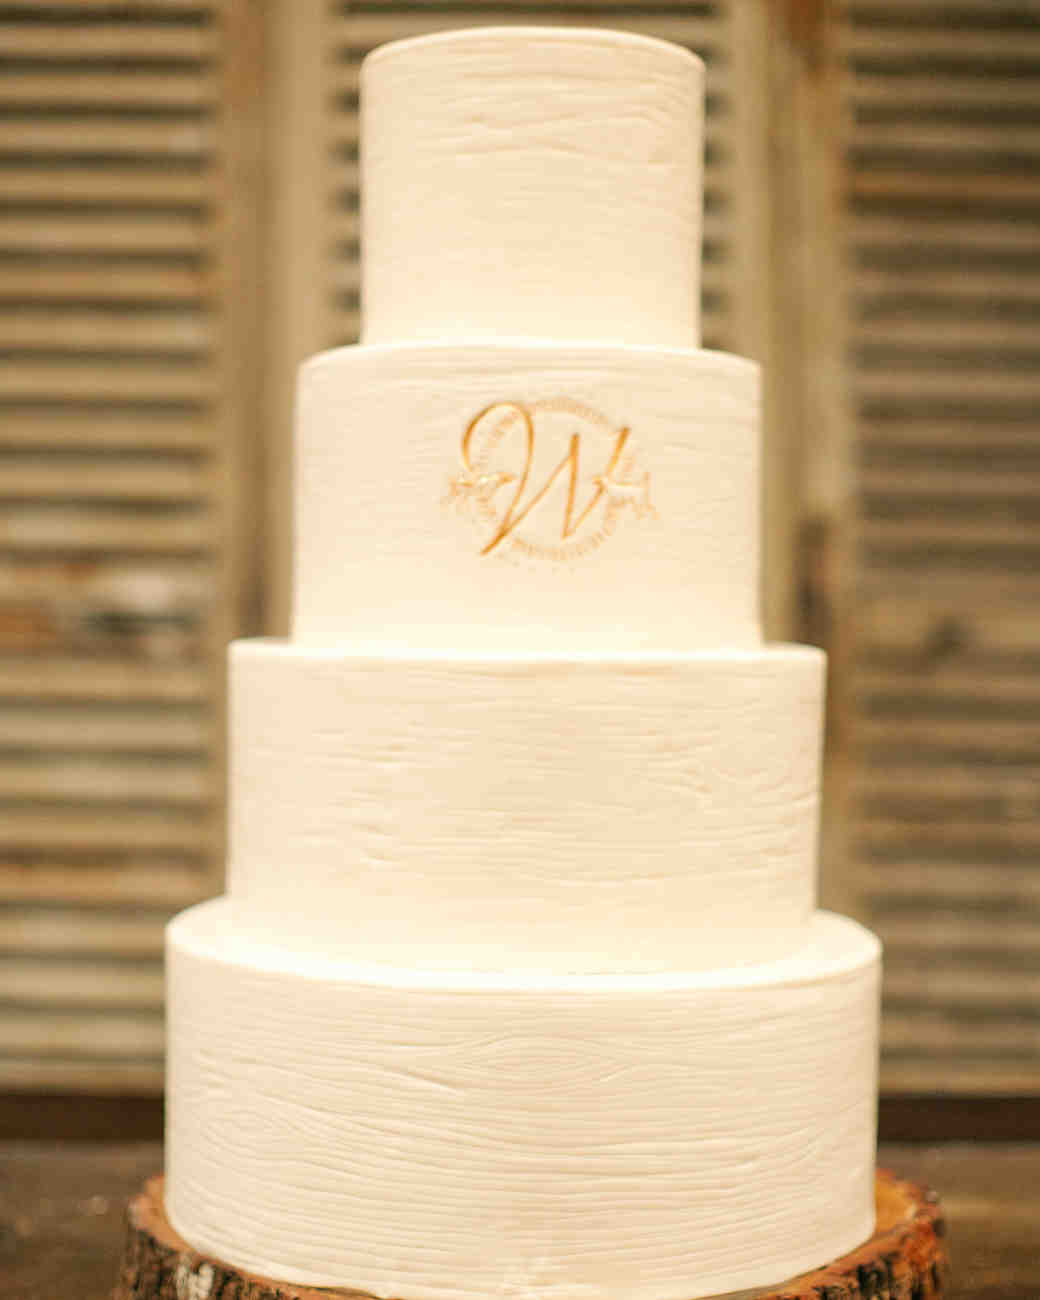 White Four-Tiered Wedding Cake with Gold Monogram